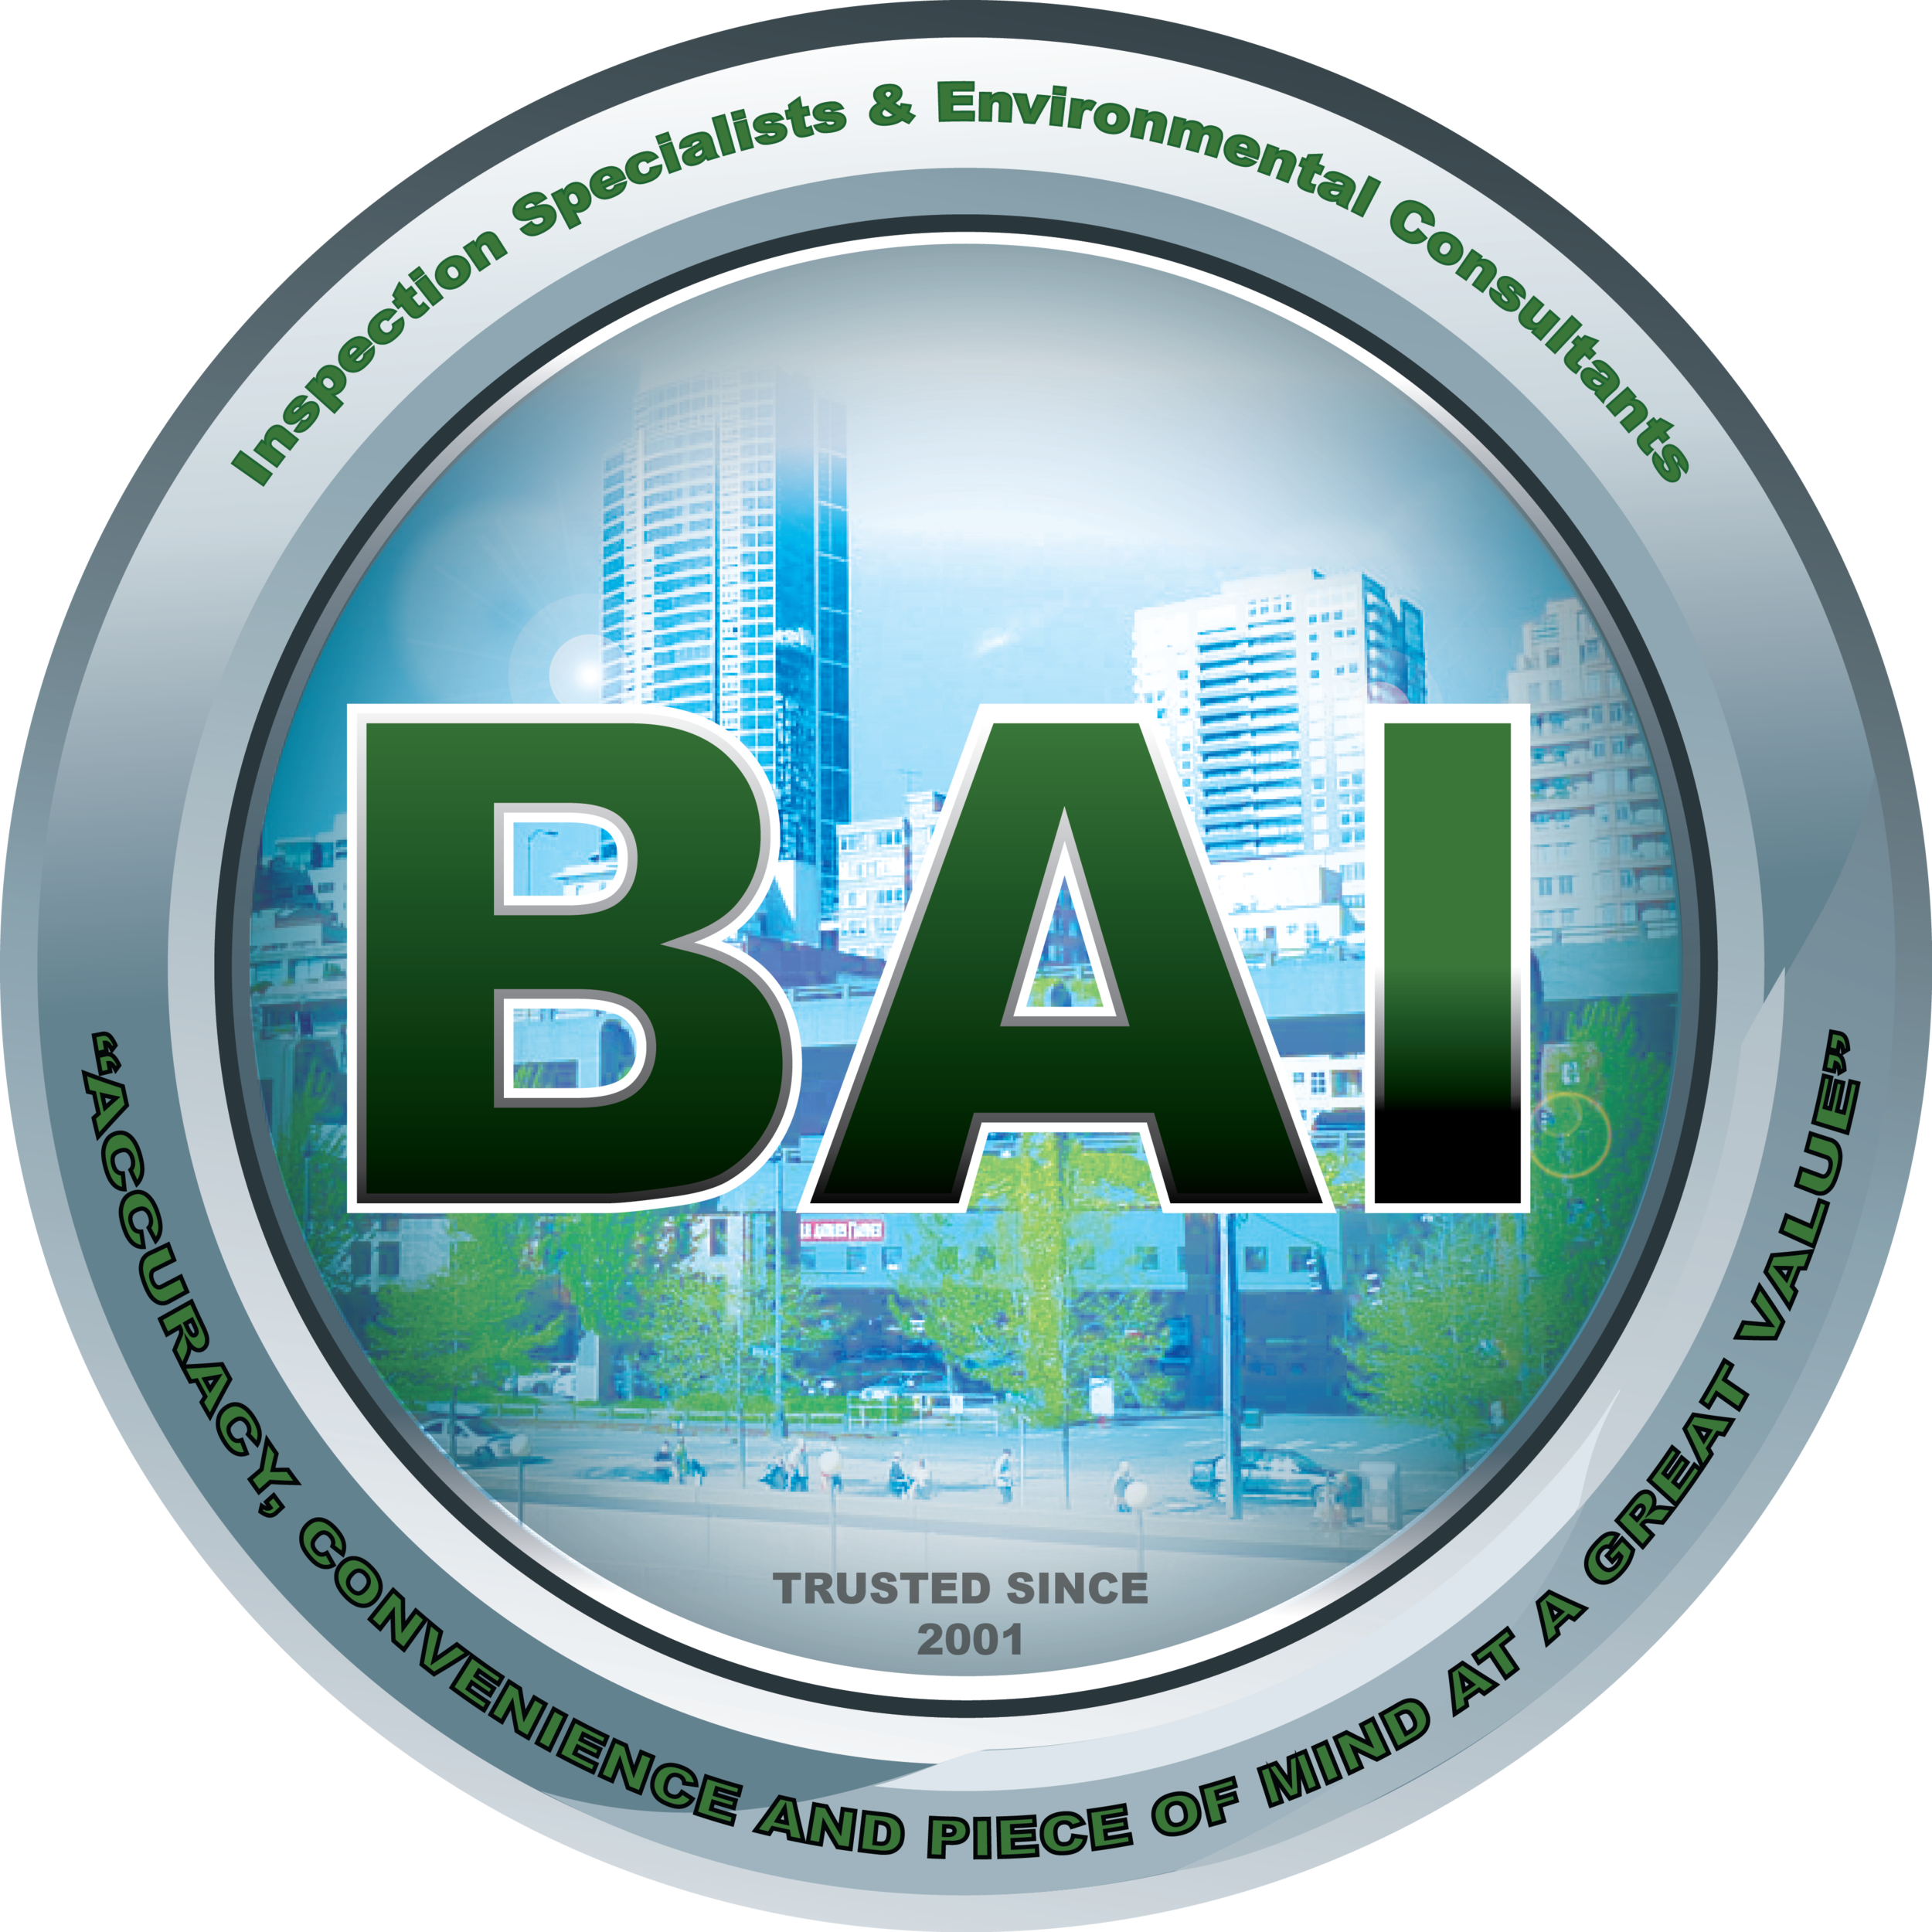 baicommercialinspectionserviceslogo.png